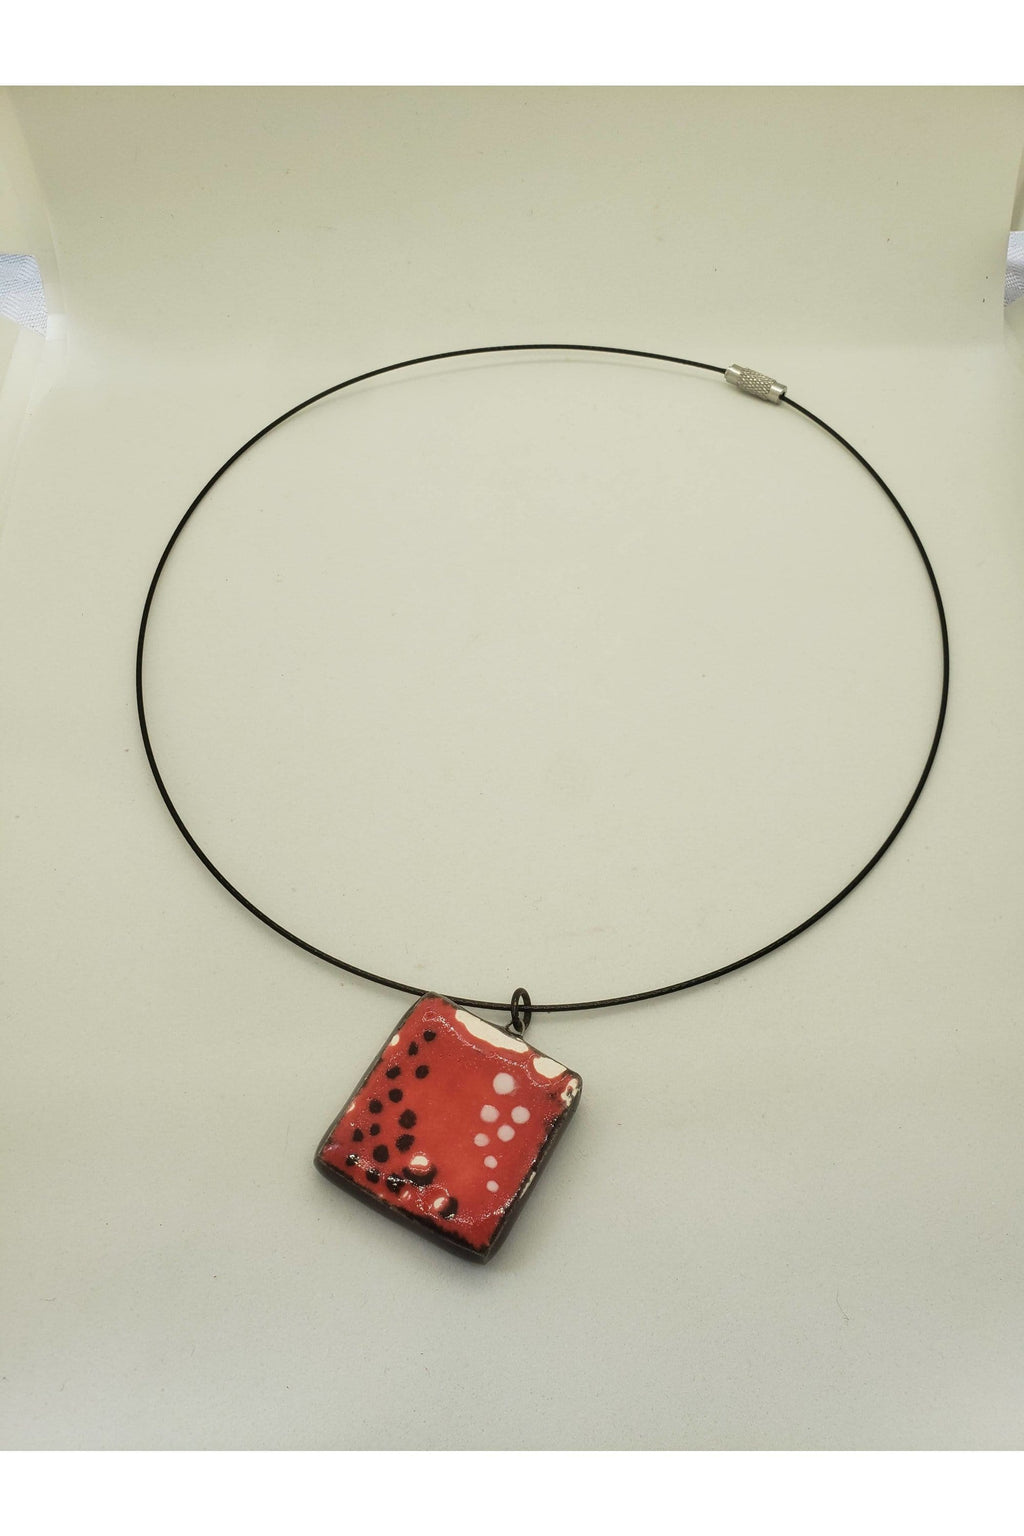 Dsquared Necklace - Himelhoch's